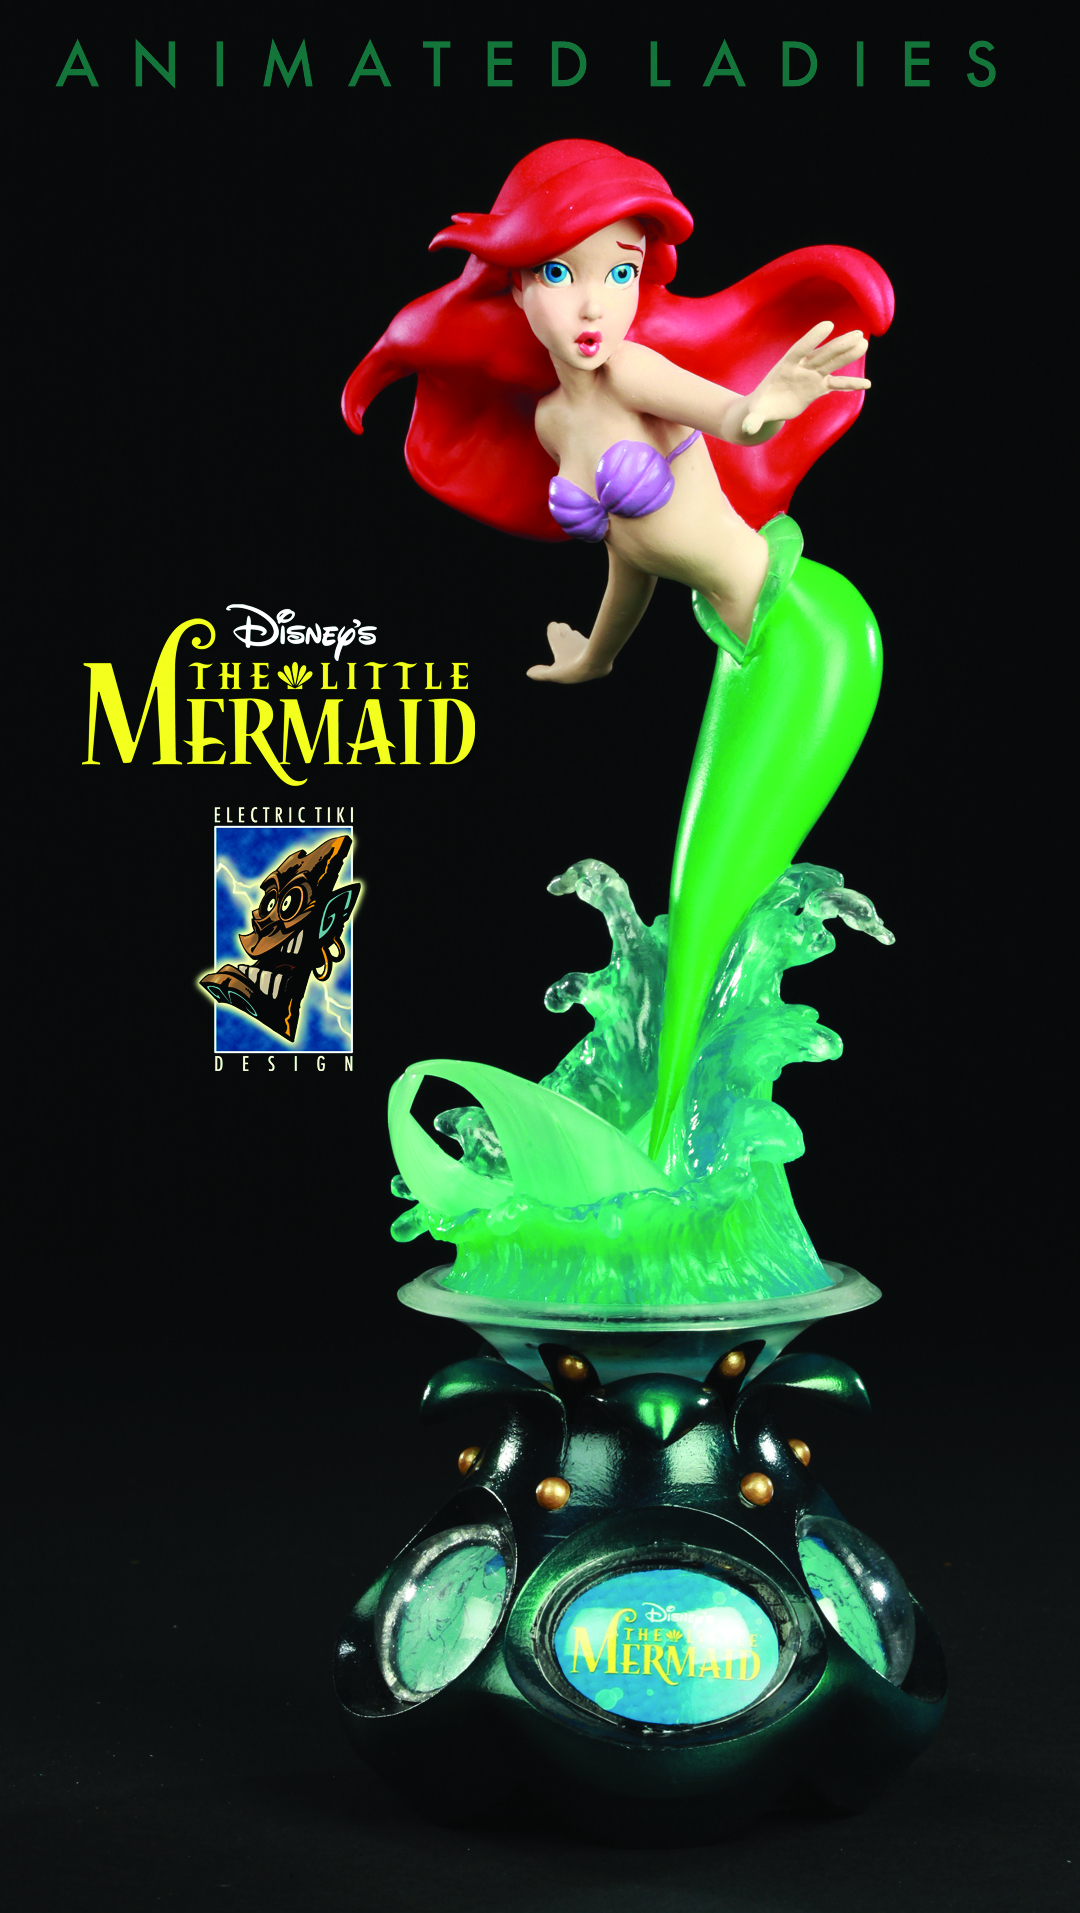 DISNEY ANIMATED LADIES ARIEL STATUE